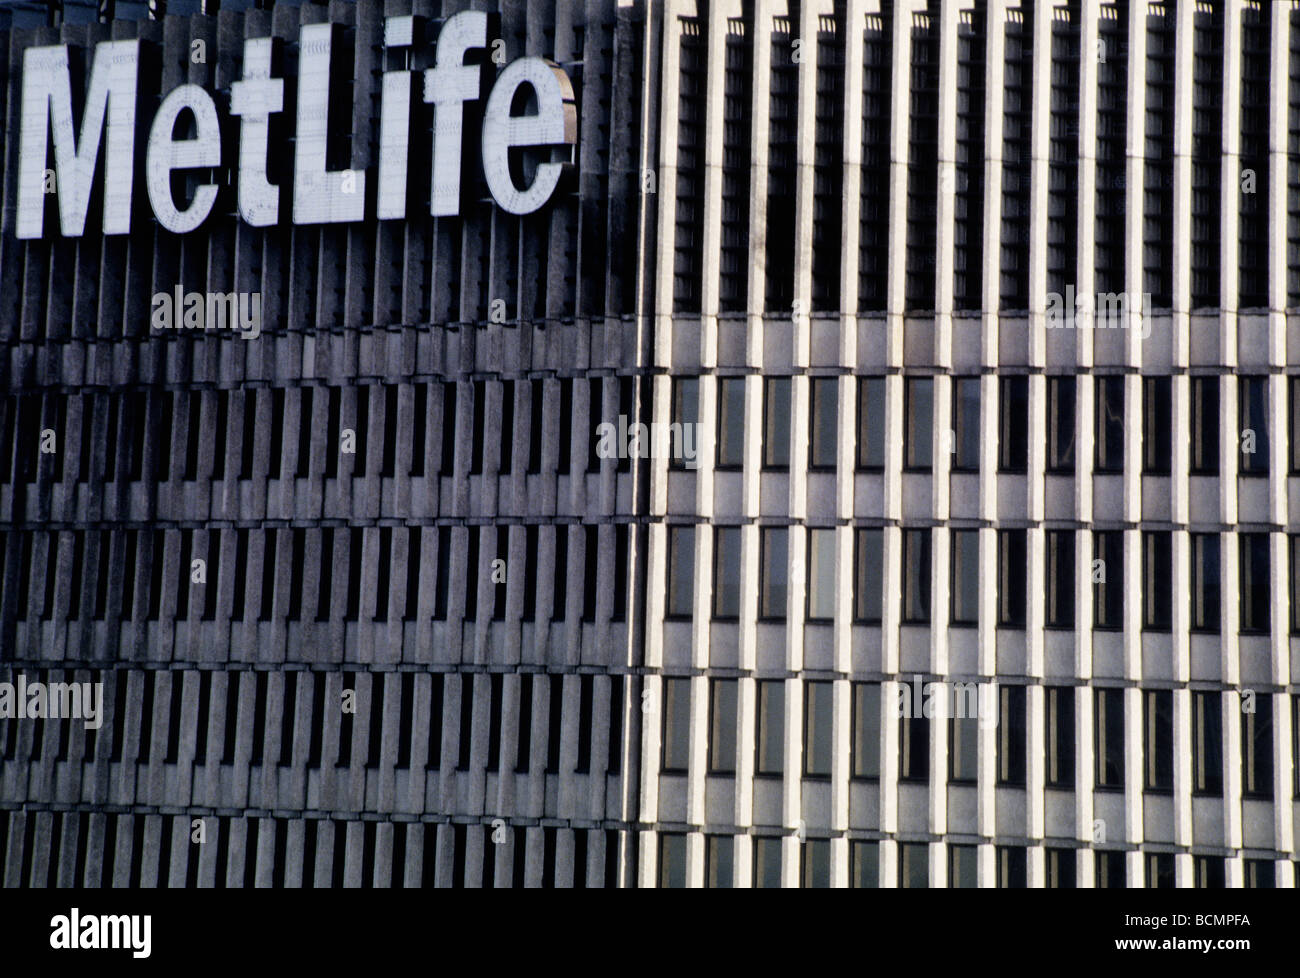 MetLife Building Close Up New York City Detail - Stock Image